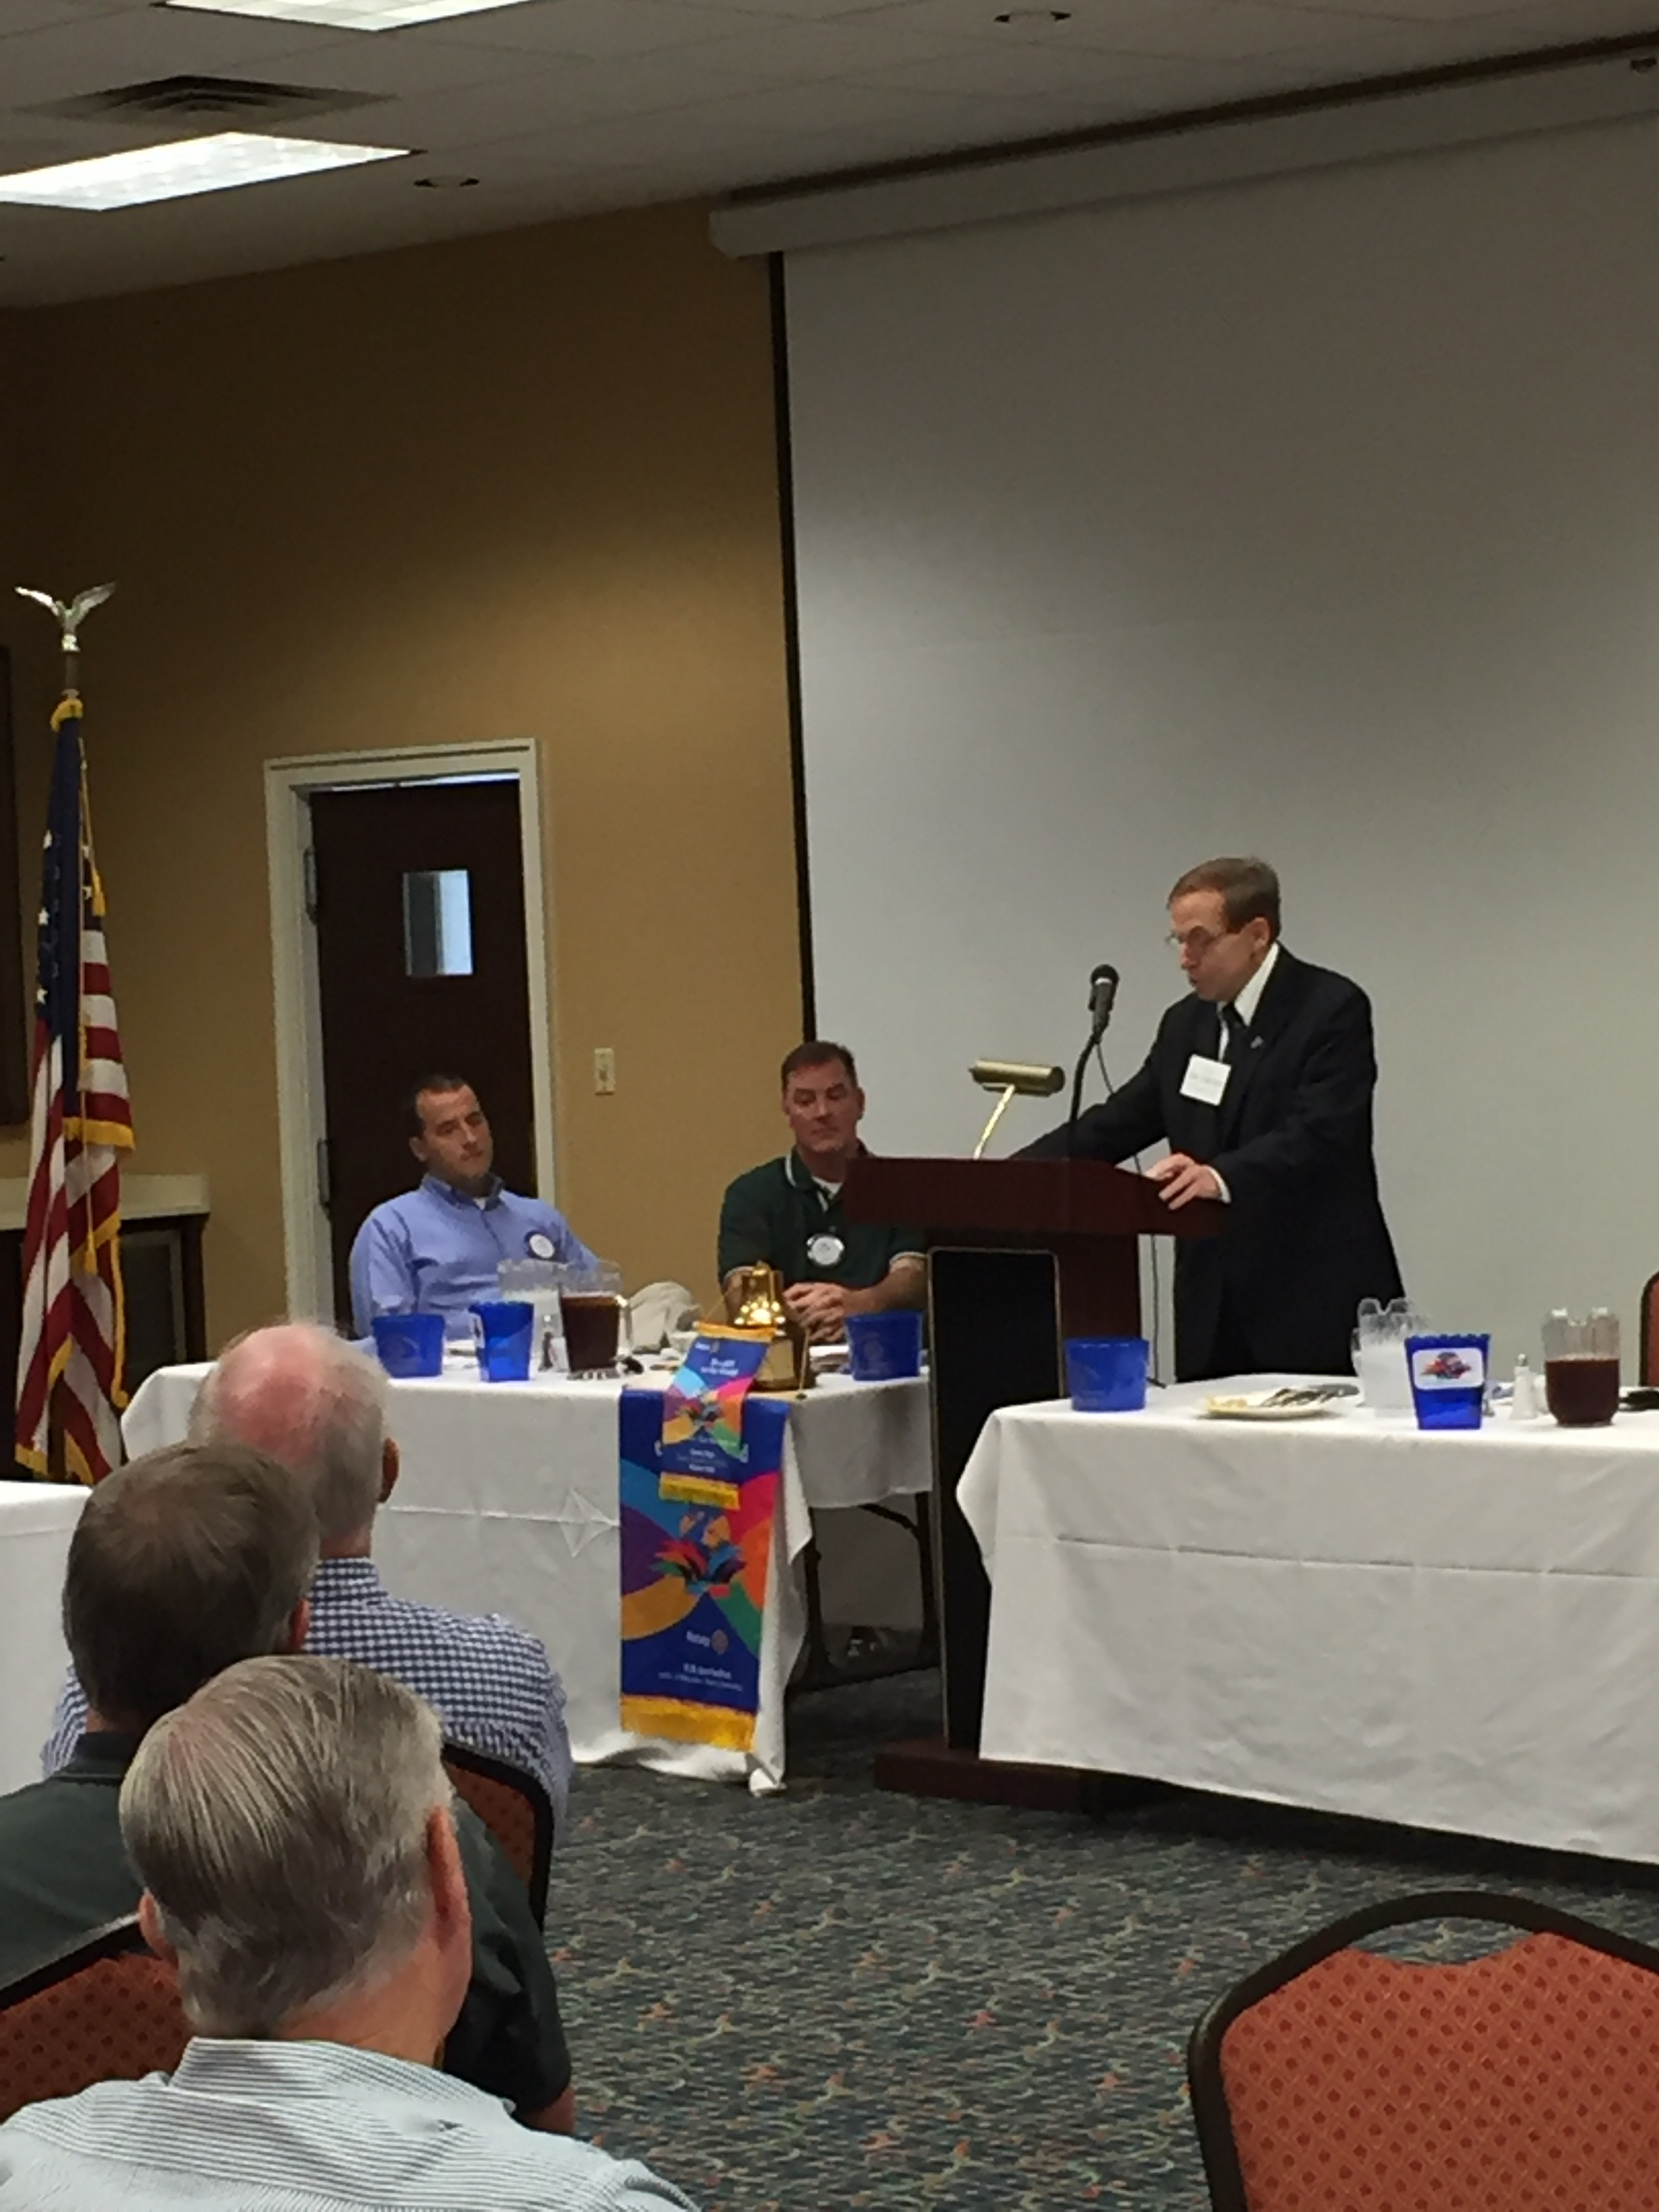 Justice Edmunds addresses Crescent Rotary Club in Greensboro, 12 October 2015.